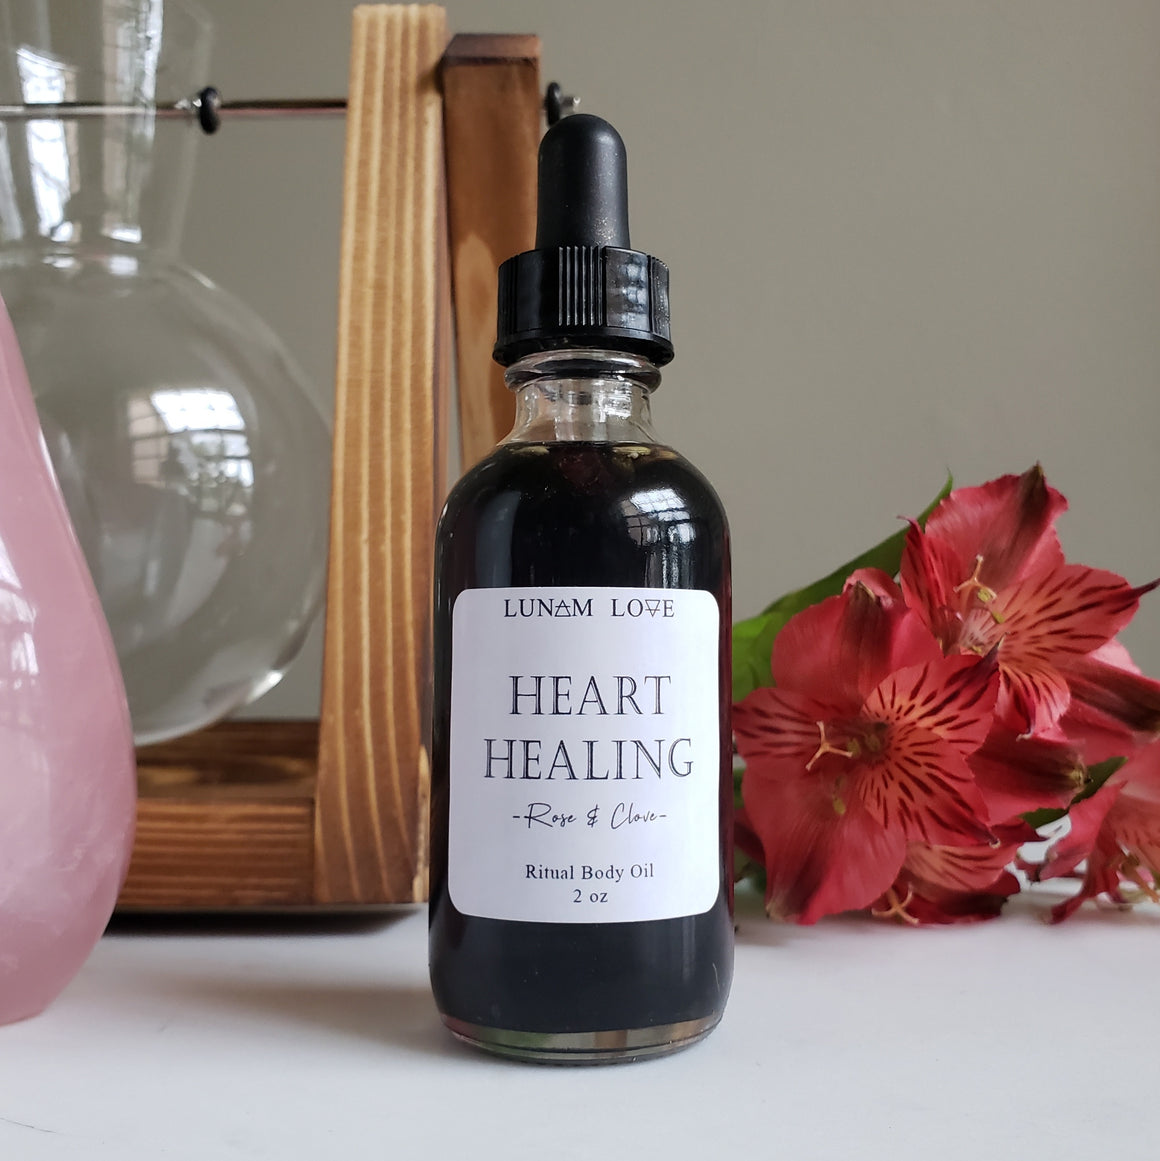 Heart Healing Body Oil